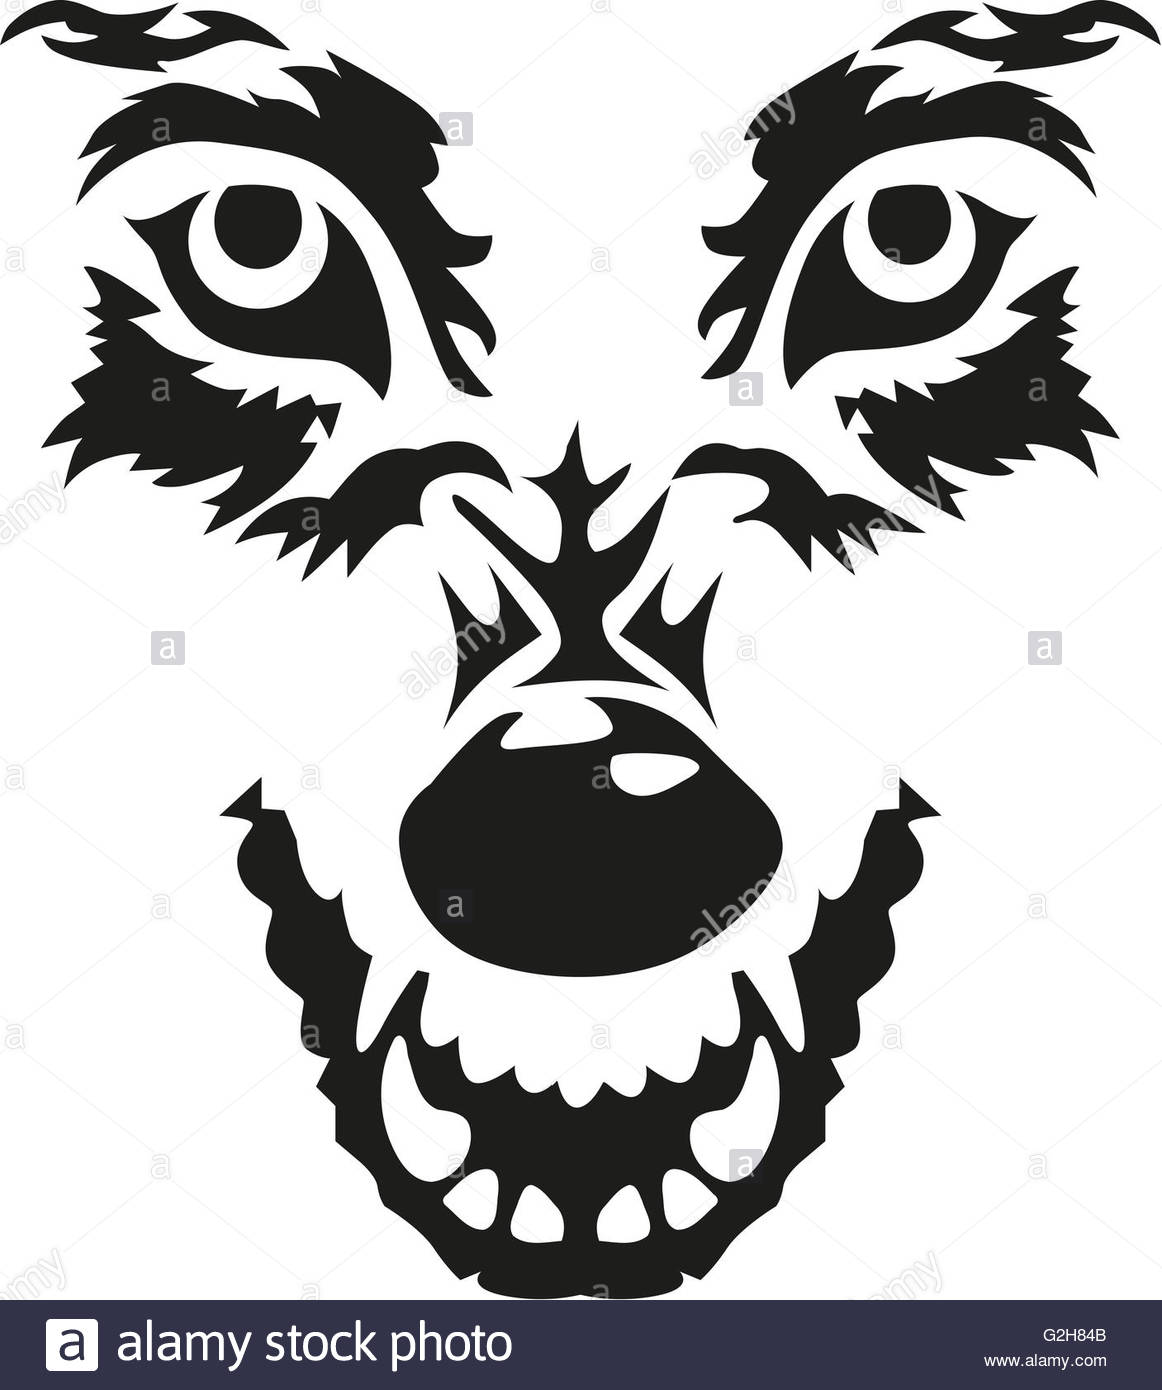 1162x1390 Angry Wolf Face Stock Photo, Royalty Free Image 104871099